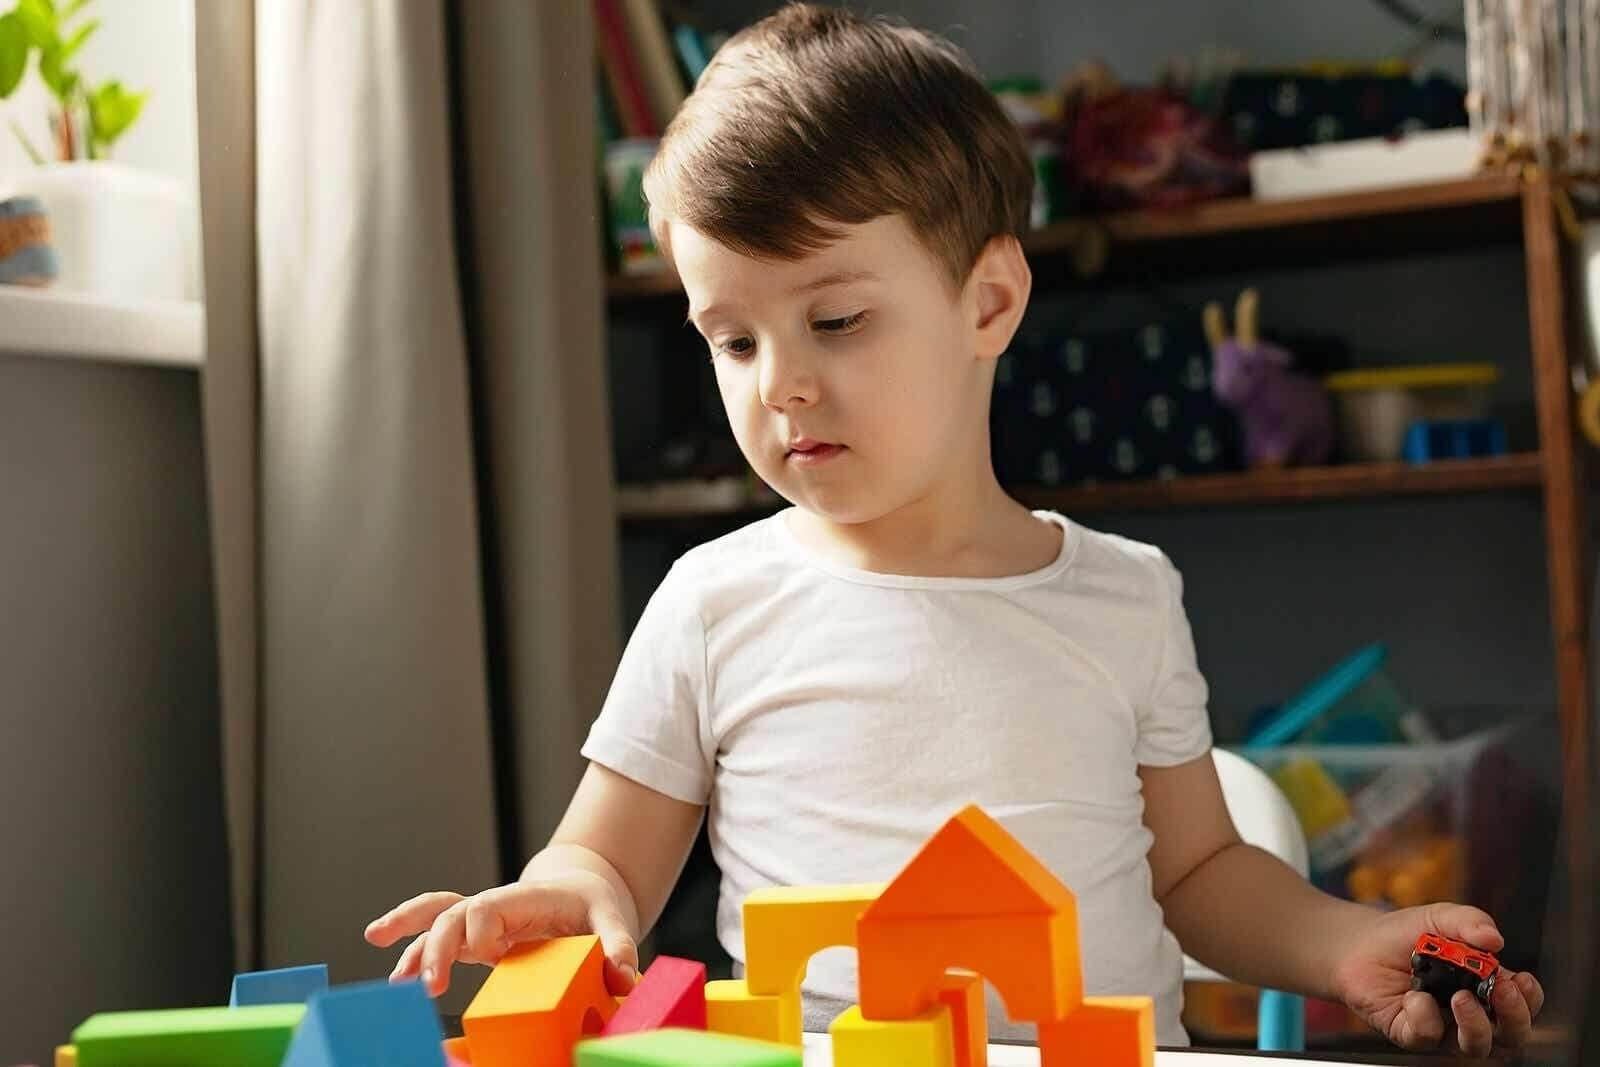 Child playing with building blocks, but not wanting to pick them up.